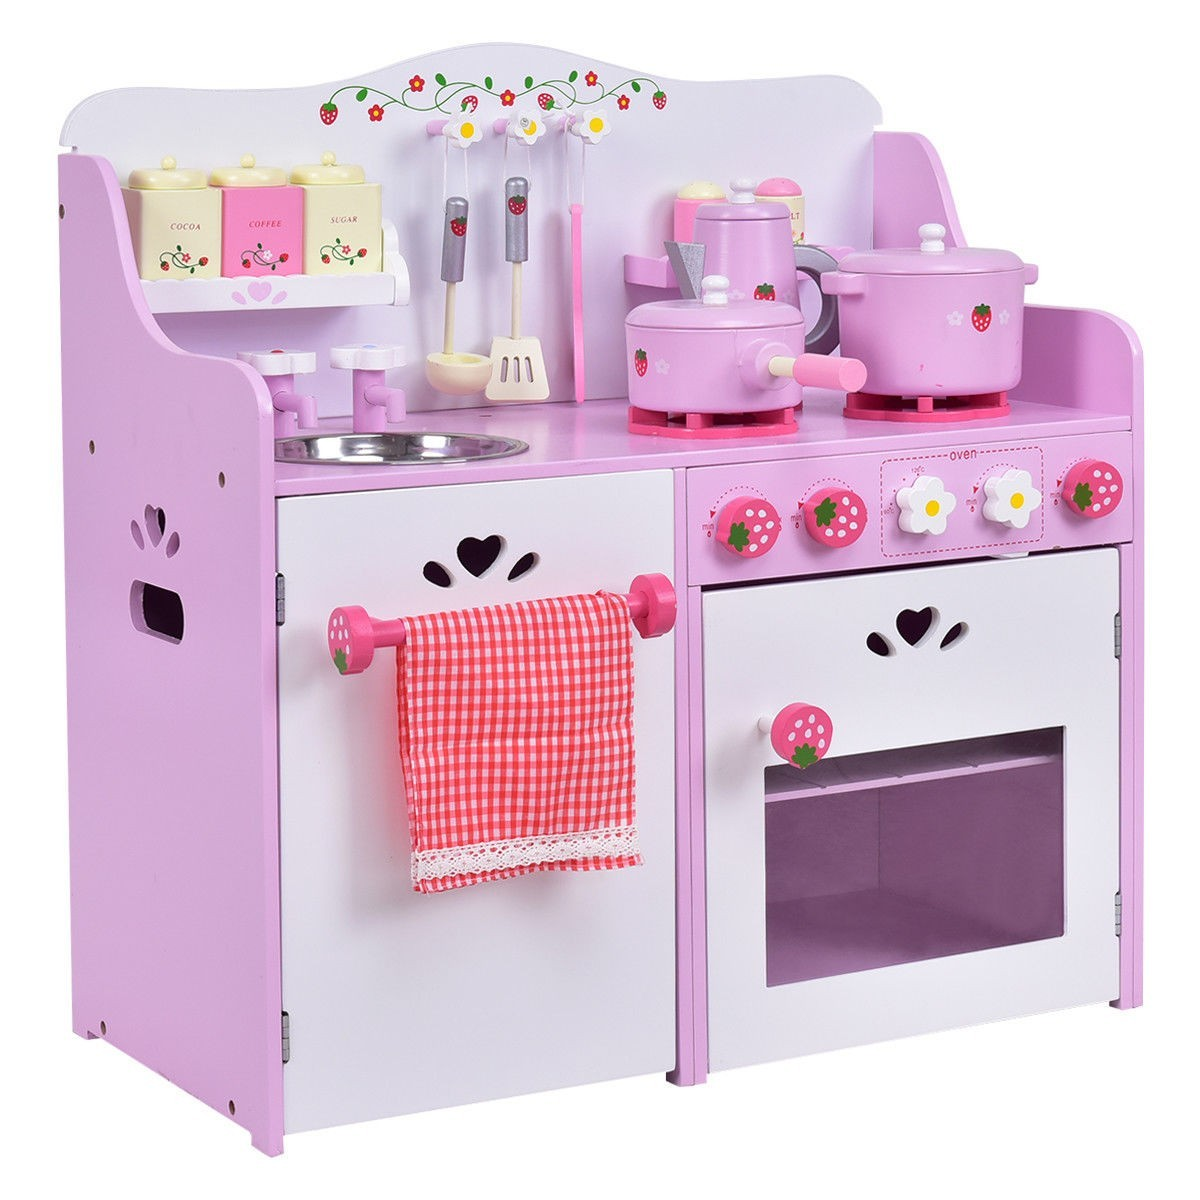 Kids Wooden Kitchen Toy Strawberry Pretend Cooking Playset by